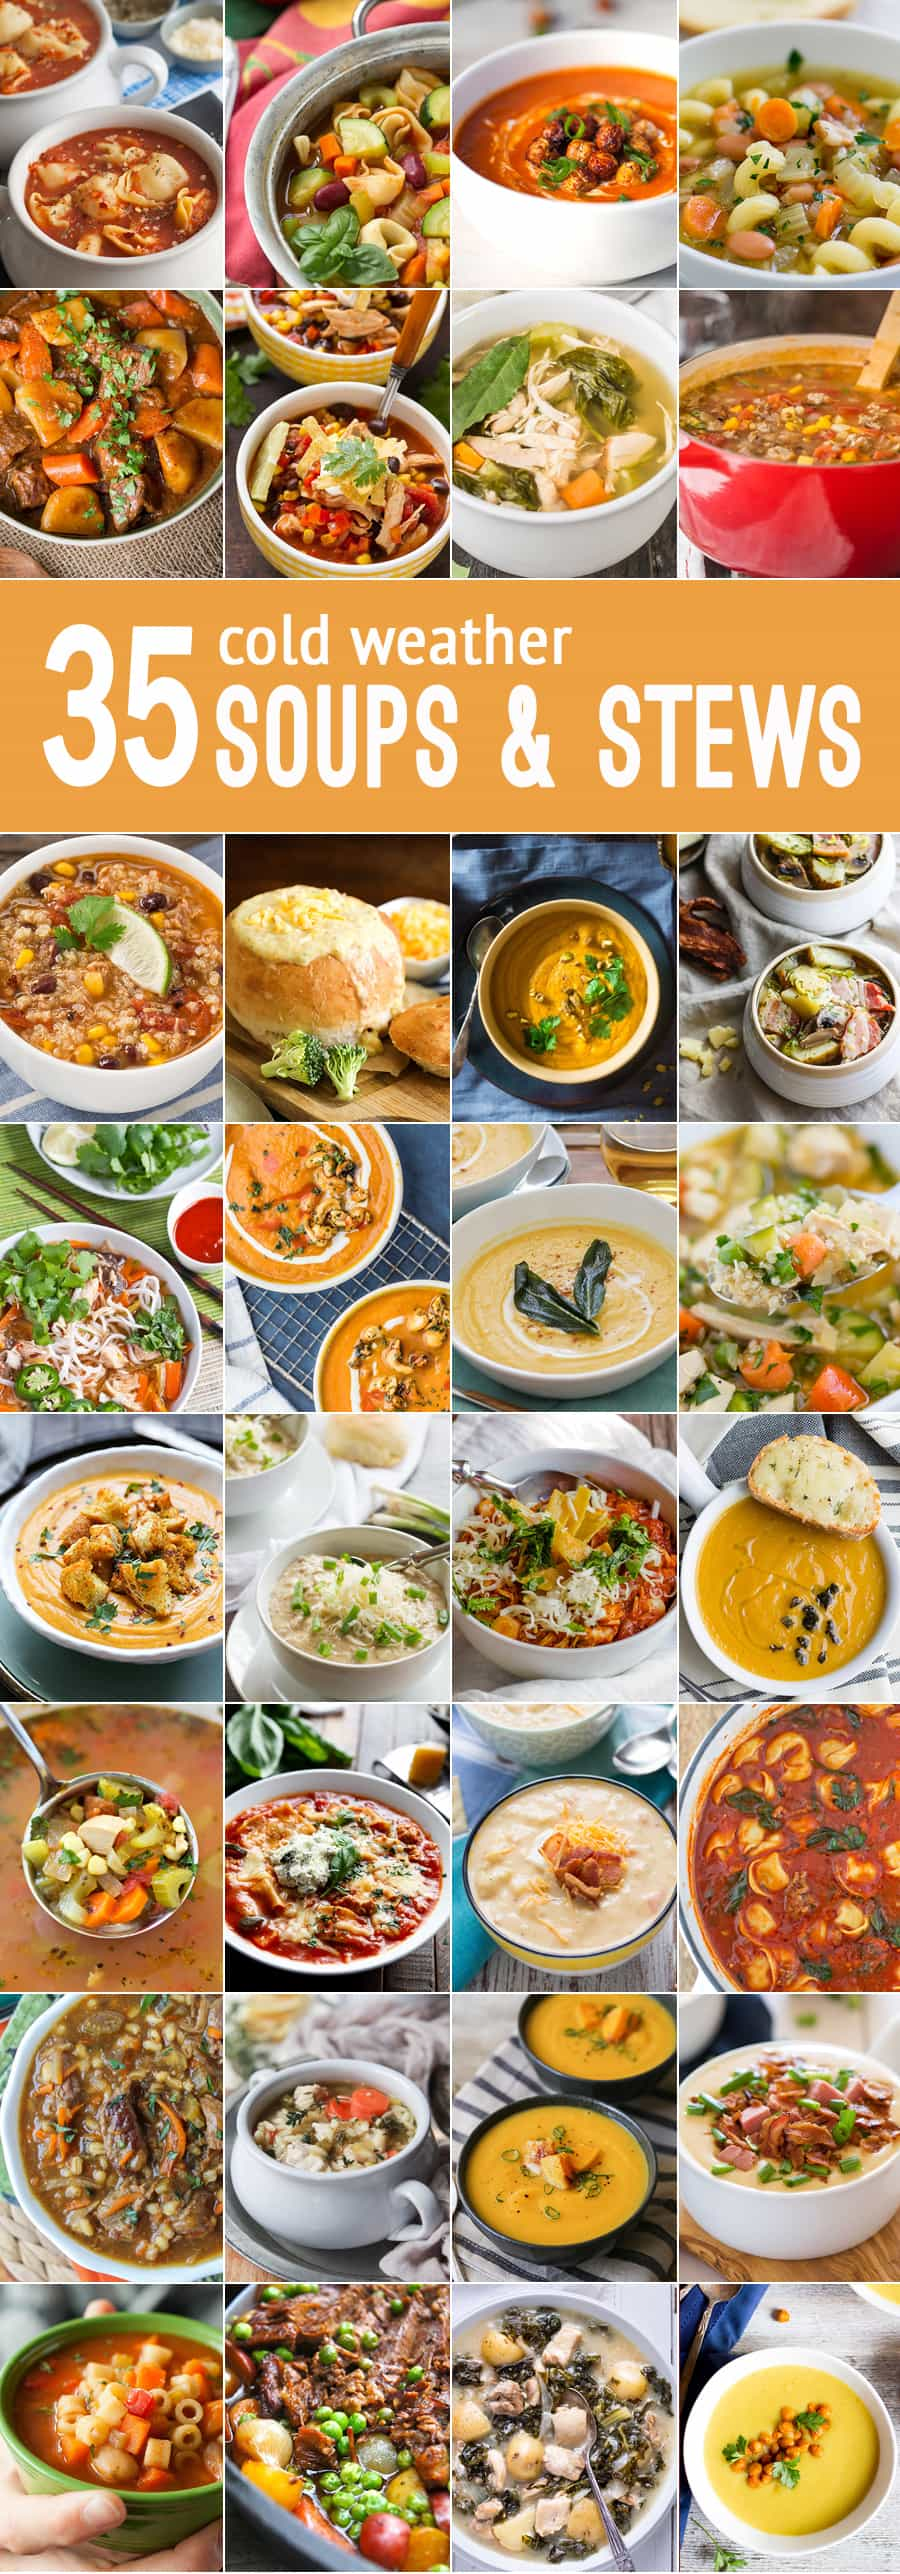 35 Soups and Stews for cold weather! Healthy soup recipes, comfort food soup recipes, and everything in between! BEST SOUP RECIPES on the internet all in one place!